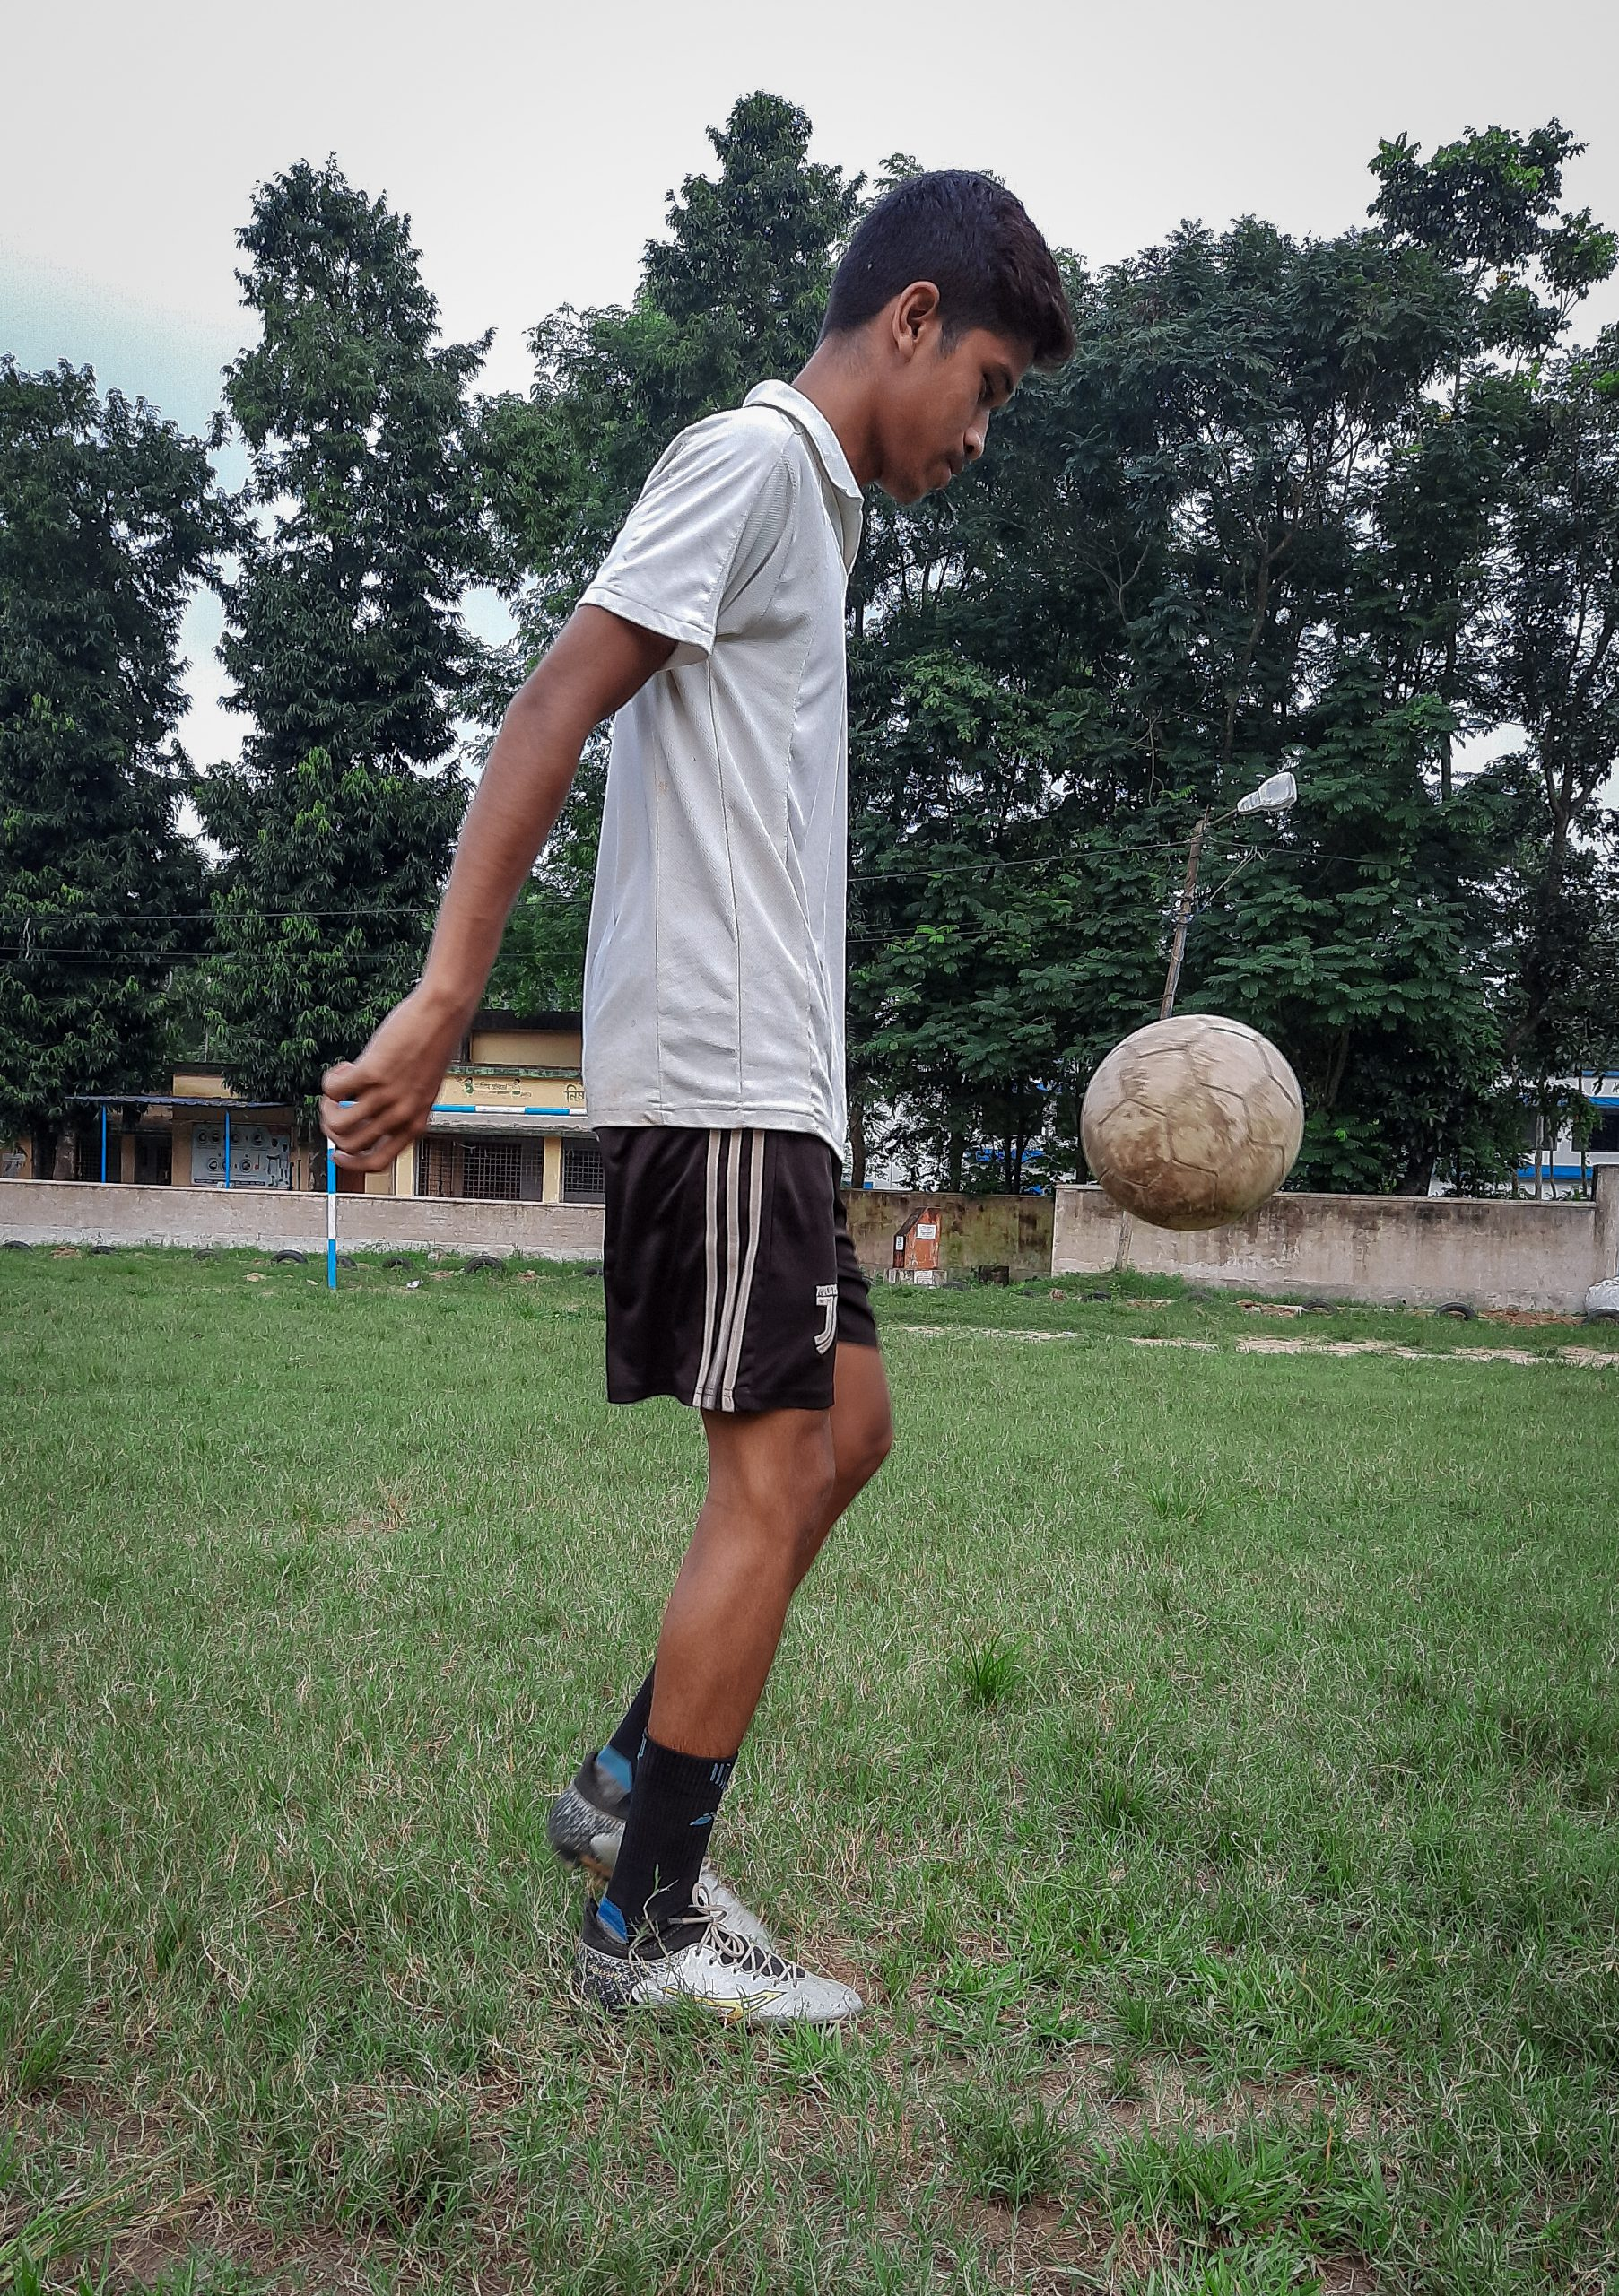 A boy juggling with football